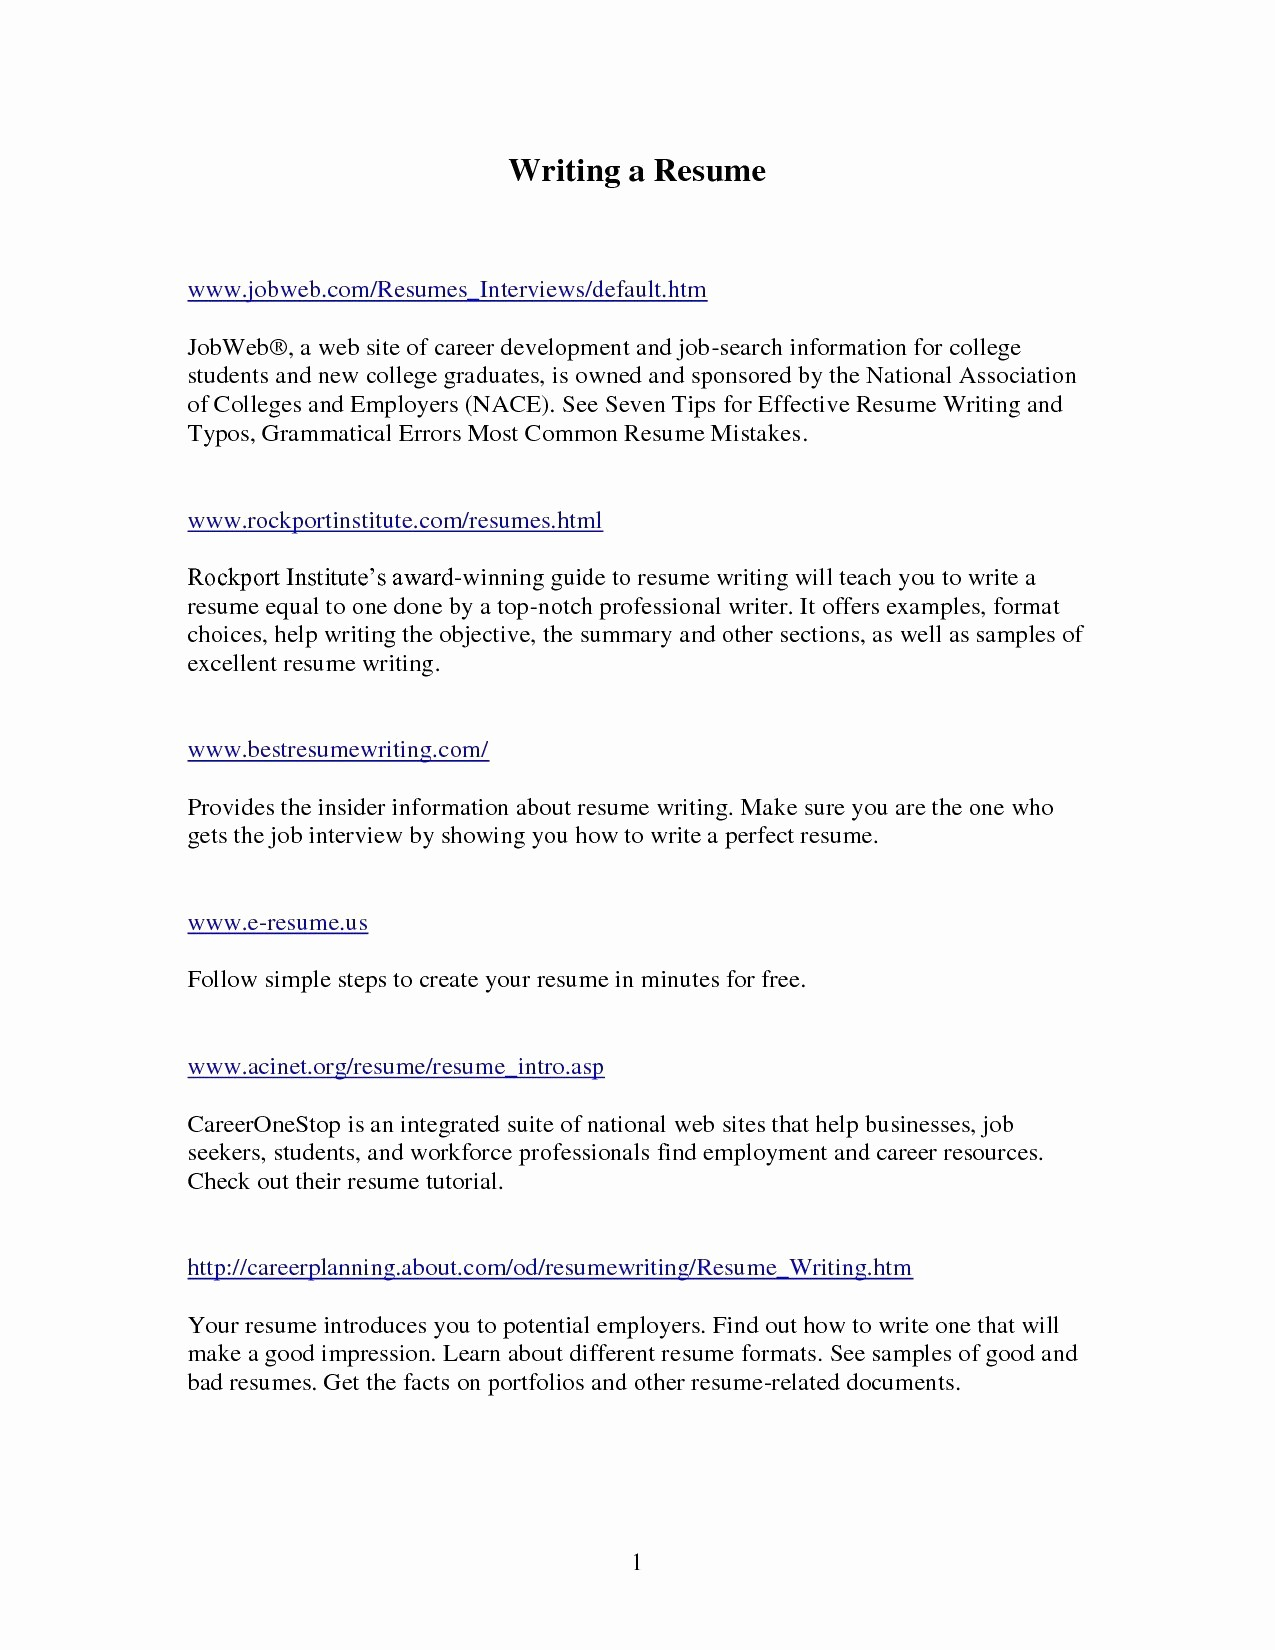 Resume Samples for Career Changers - Career Change Resume Samples